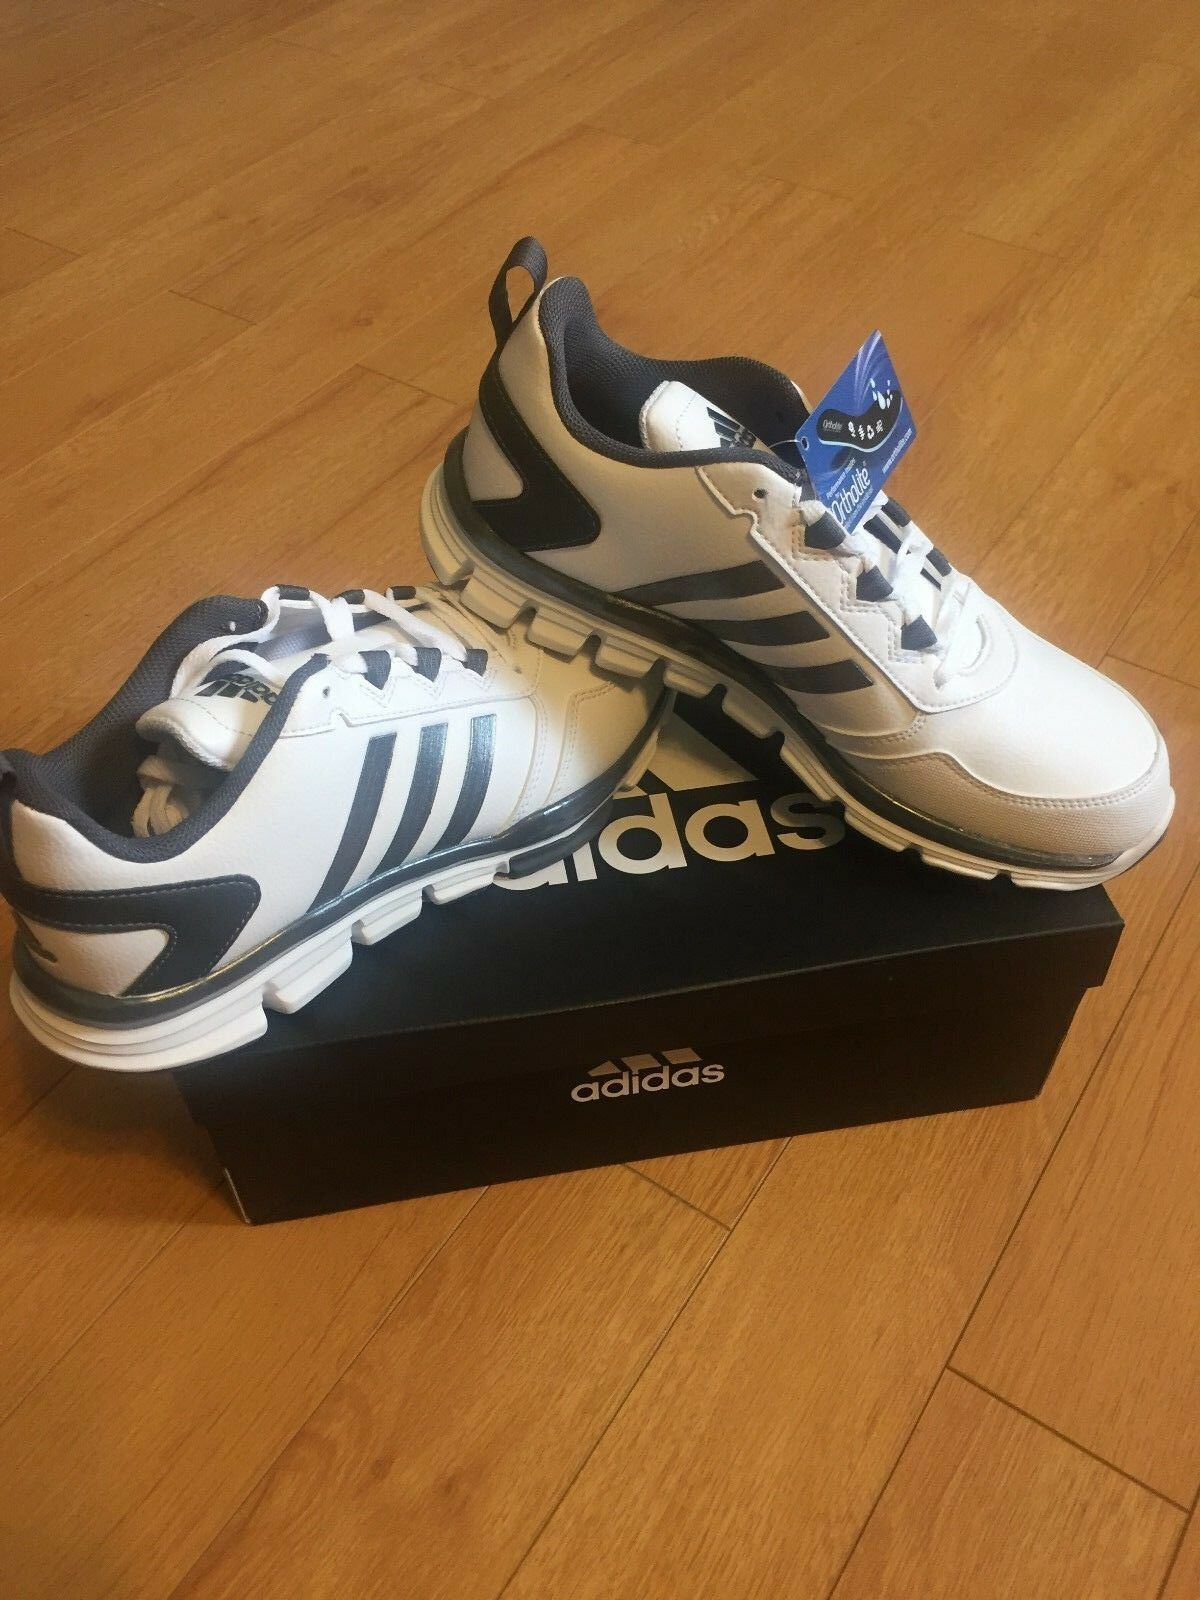 Brand New Men's size 8.5 Adidas Trainer 2 SLT Very Nice Back to school !! best-selling model of the brand